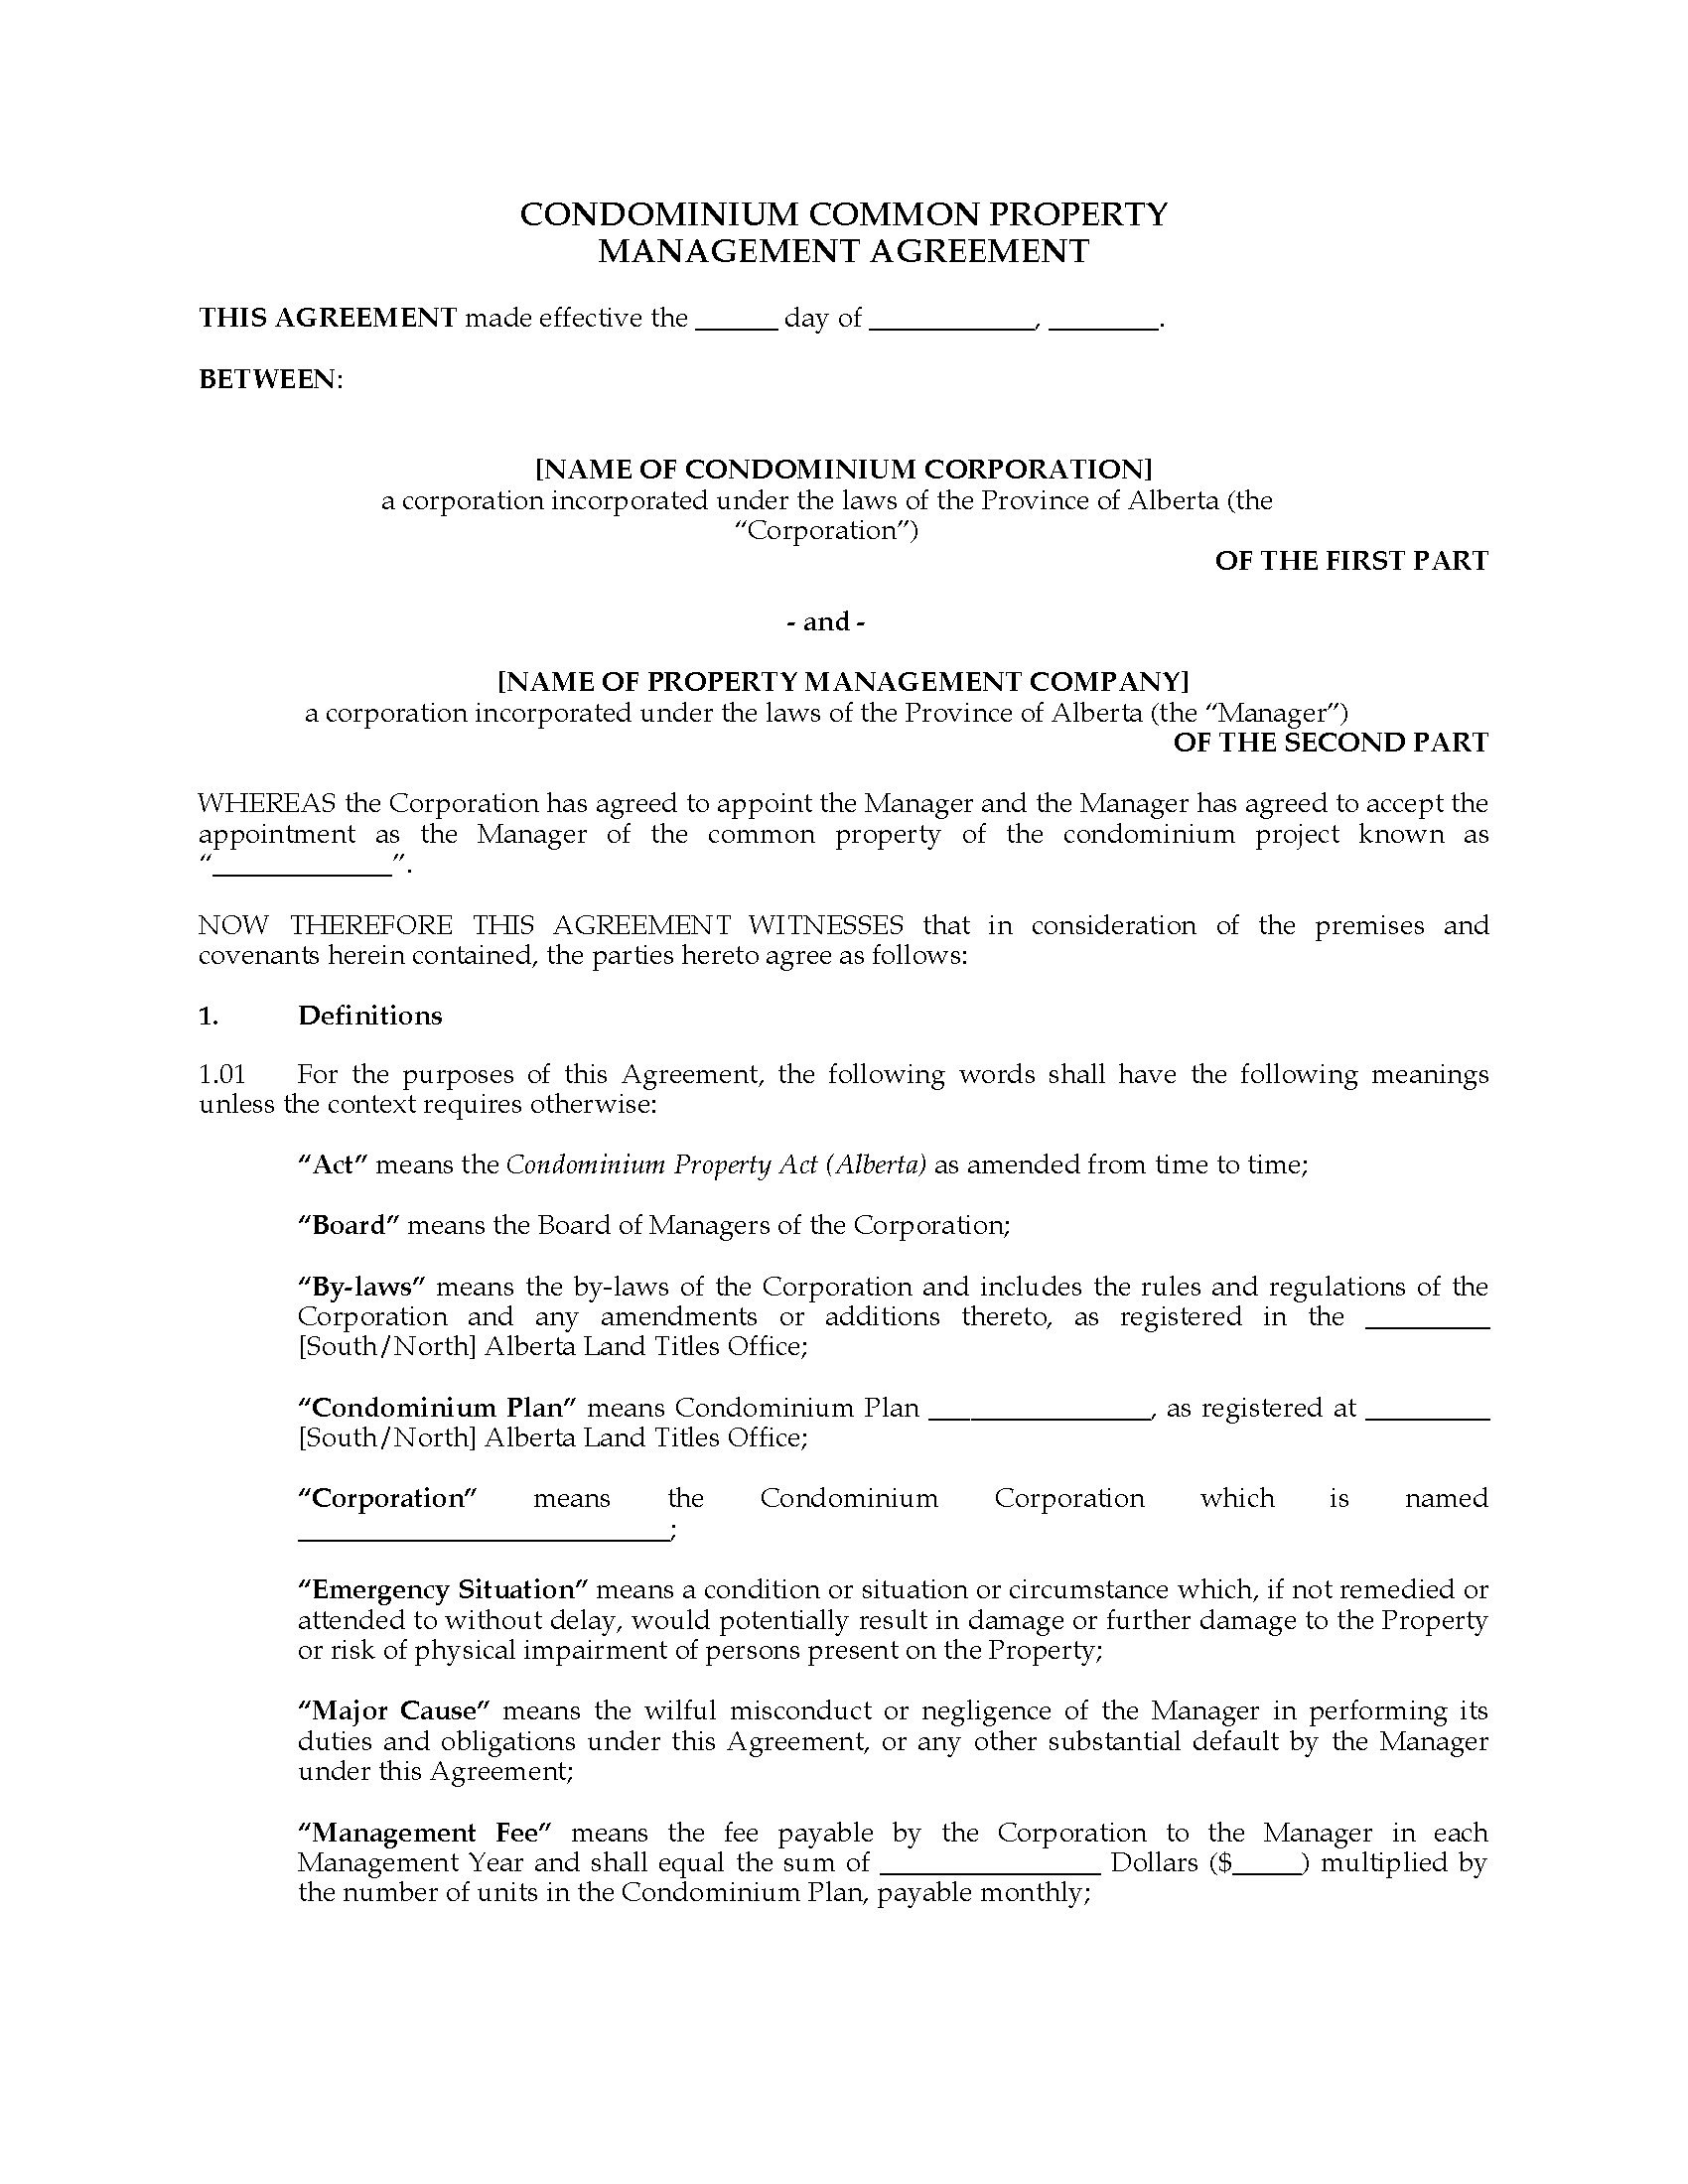 Alberta Condo Common Property Management Agreement  Legal Forms And Throughout Free Commercial Property Management Agreement Template